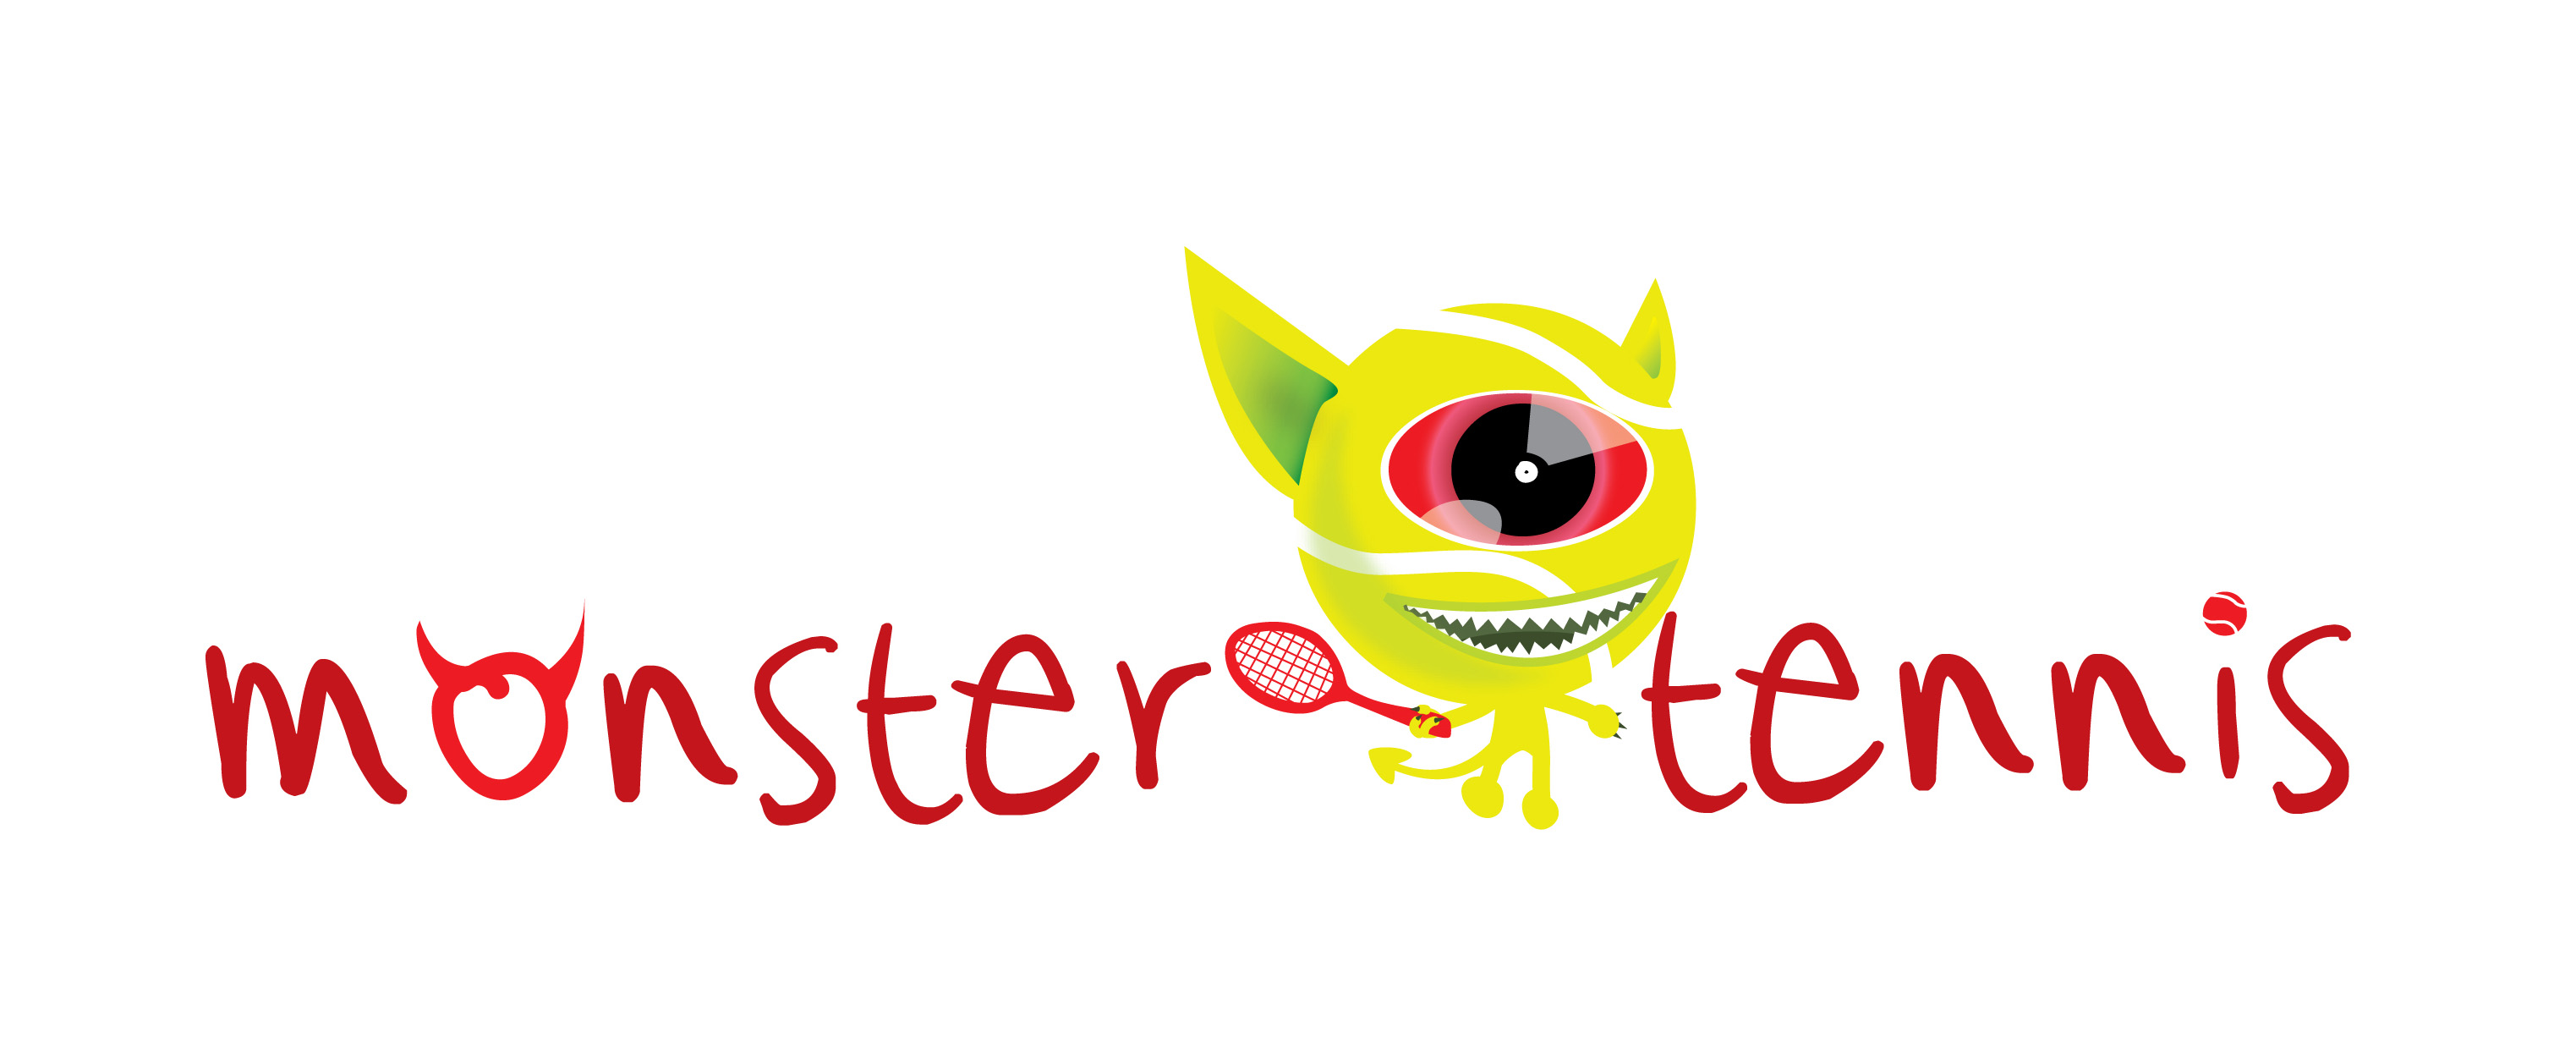 Monster logo 3